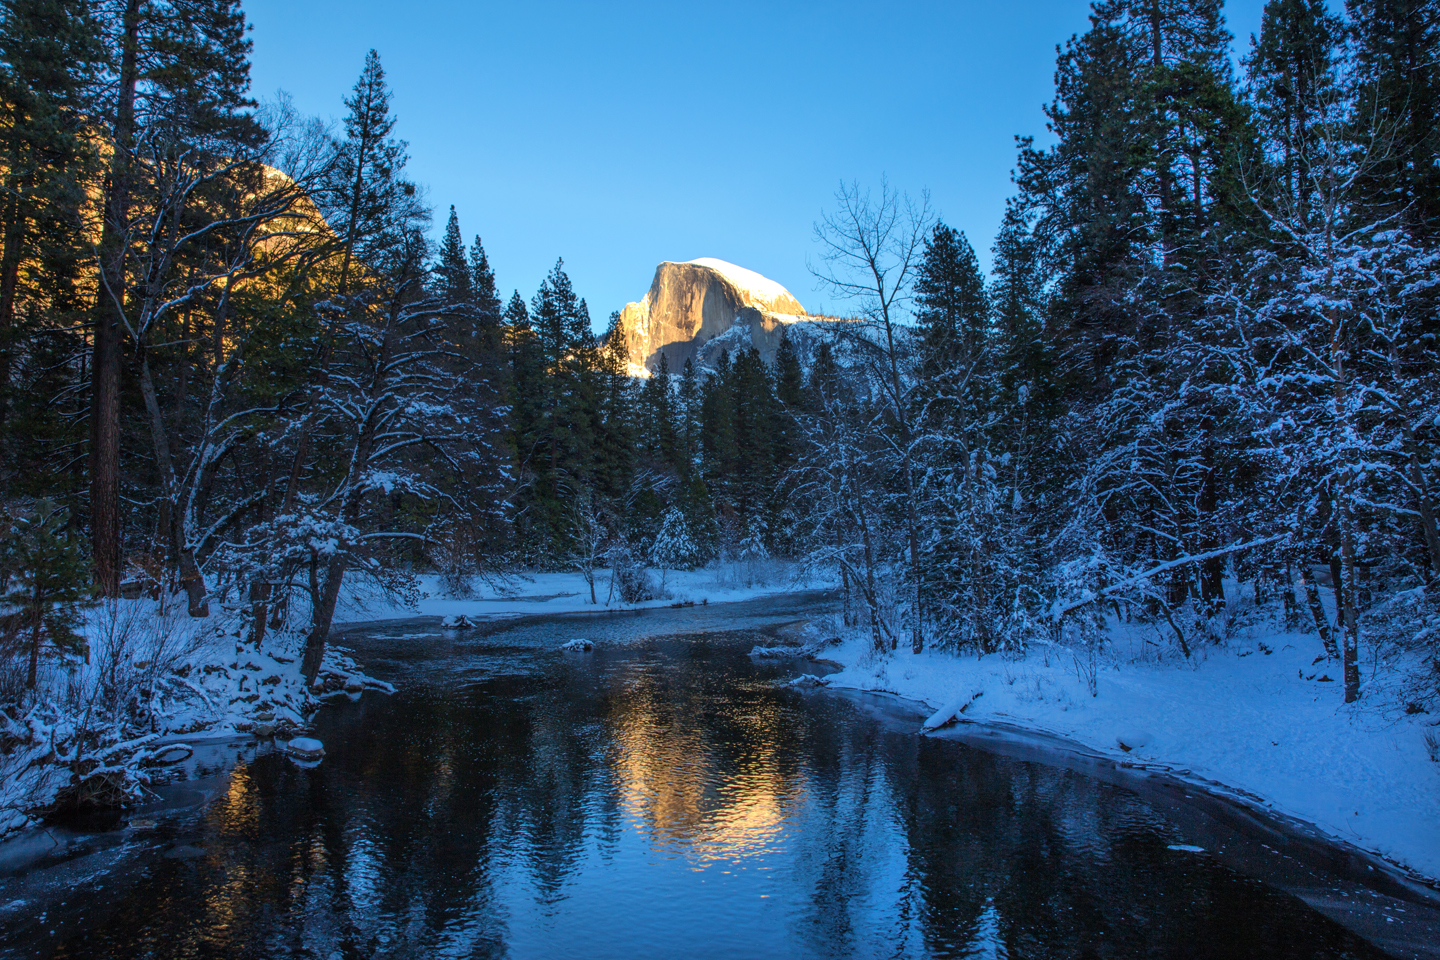 yosemite-national-park-half-dome-reflection